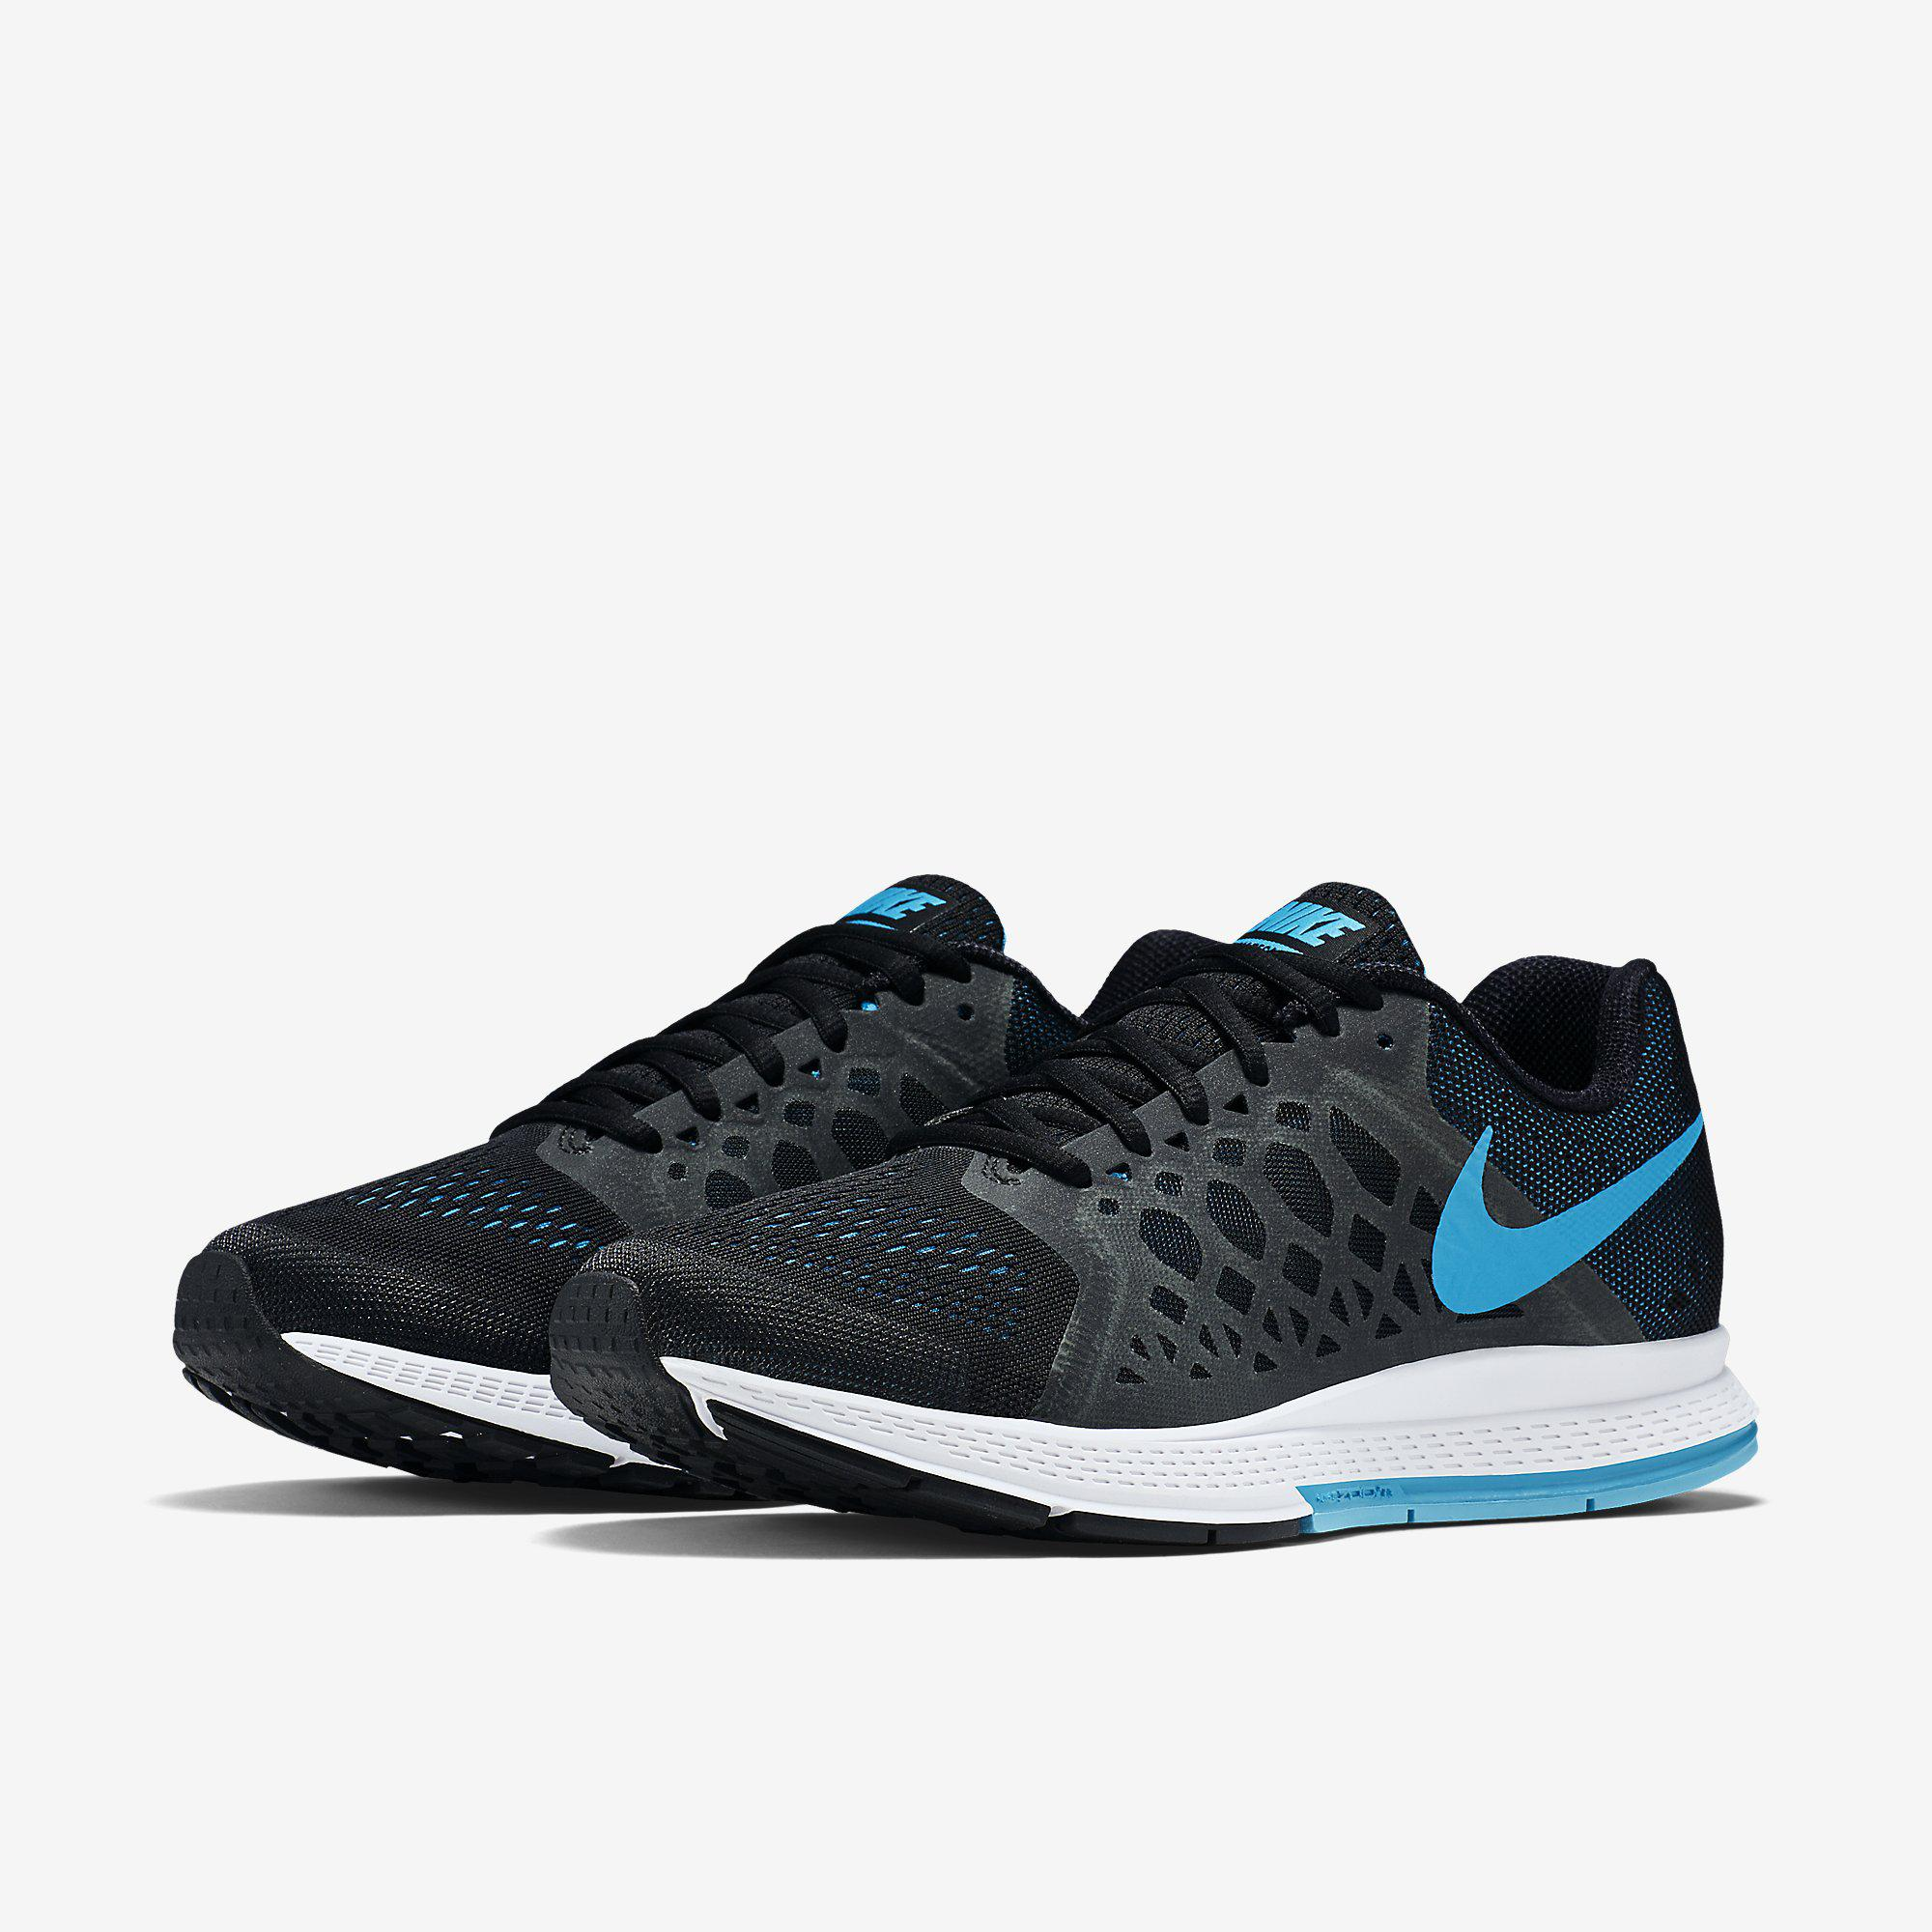 72836ef2410c9 Nike Mens Air Zoom Pegasus+31 Running Shoes - Black White Blue ...